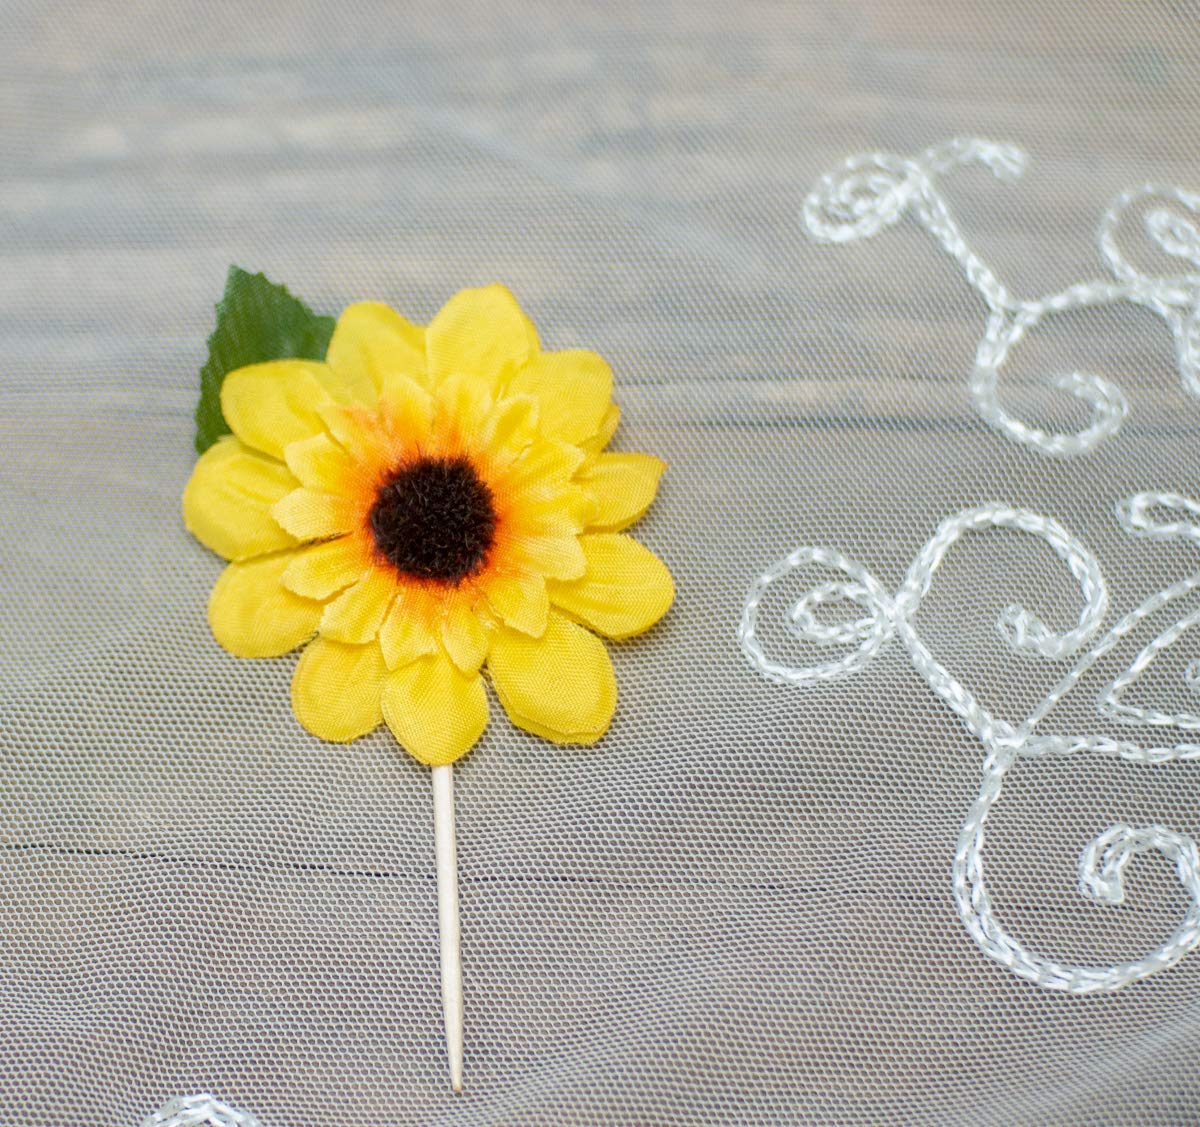 Sun Flower Baby Shower Decorations Sun Flower Cake Decorations Bridal Shower Decor,10 pieces Sunflower Cupcake Toppers Birthday Party Decorations